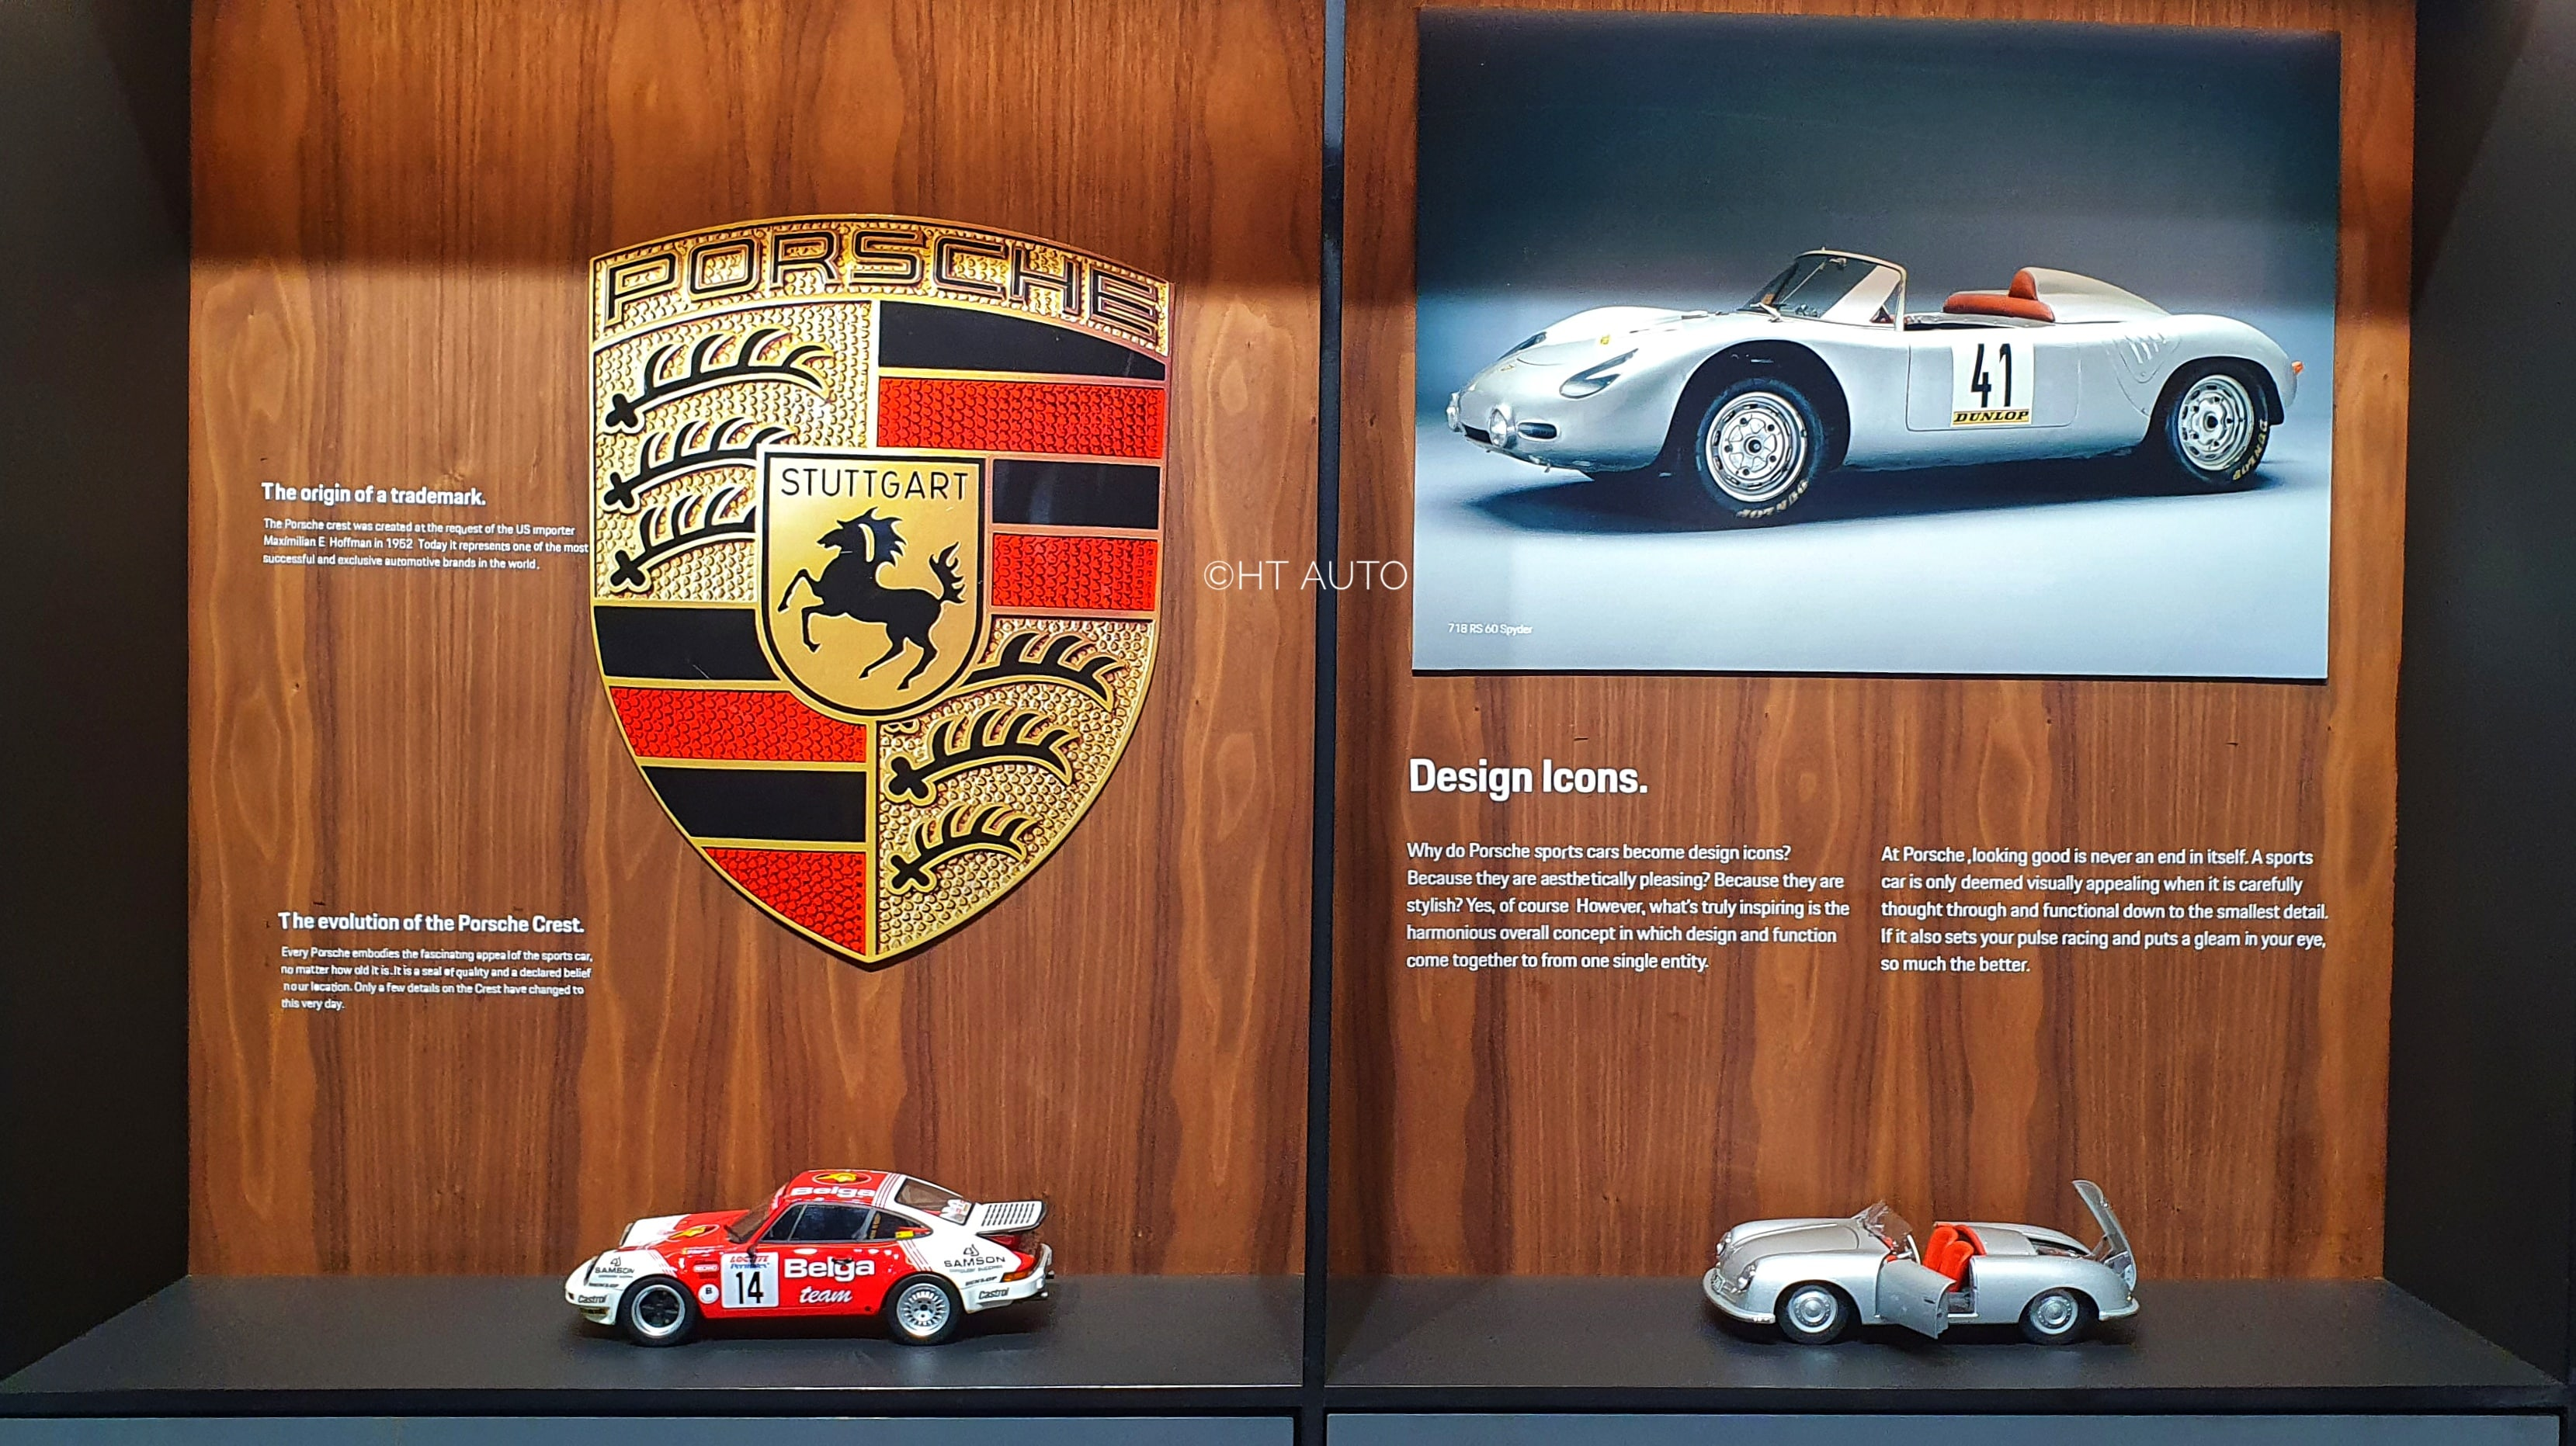 For the collectors, Porsche also offers a range of miniatures of some of its iconic models over the years, besides several memorabilia to dig in. (Sabyasachi Dasguptga/HT Auto)